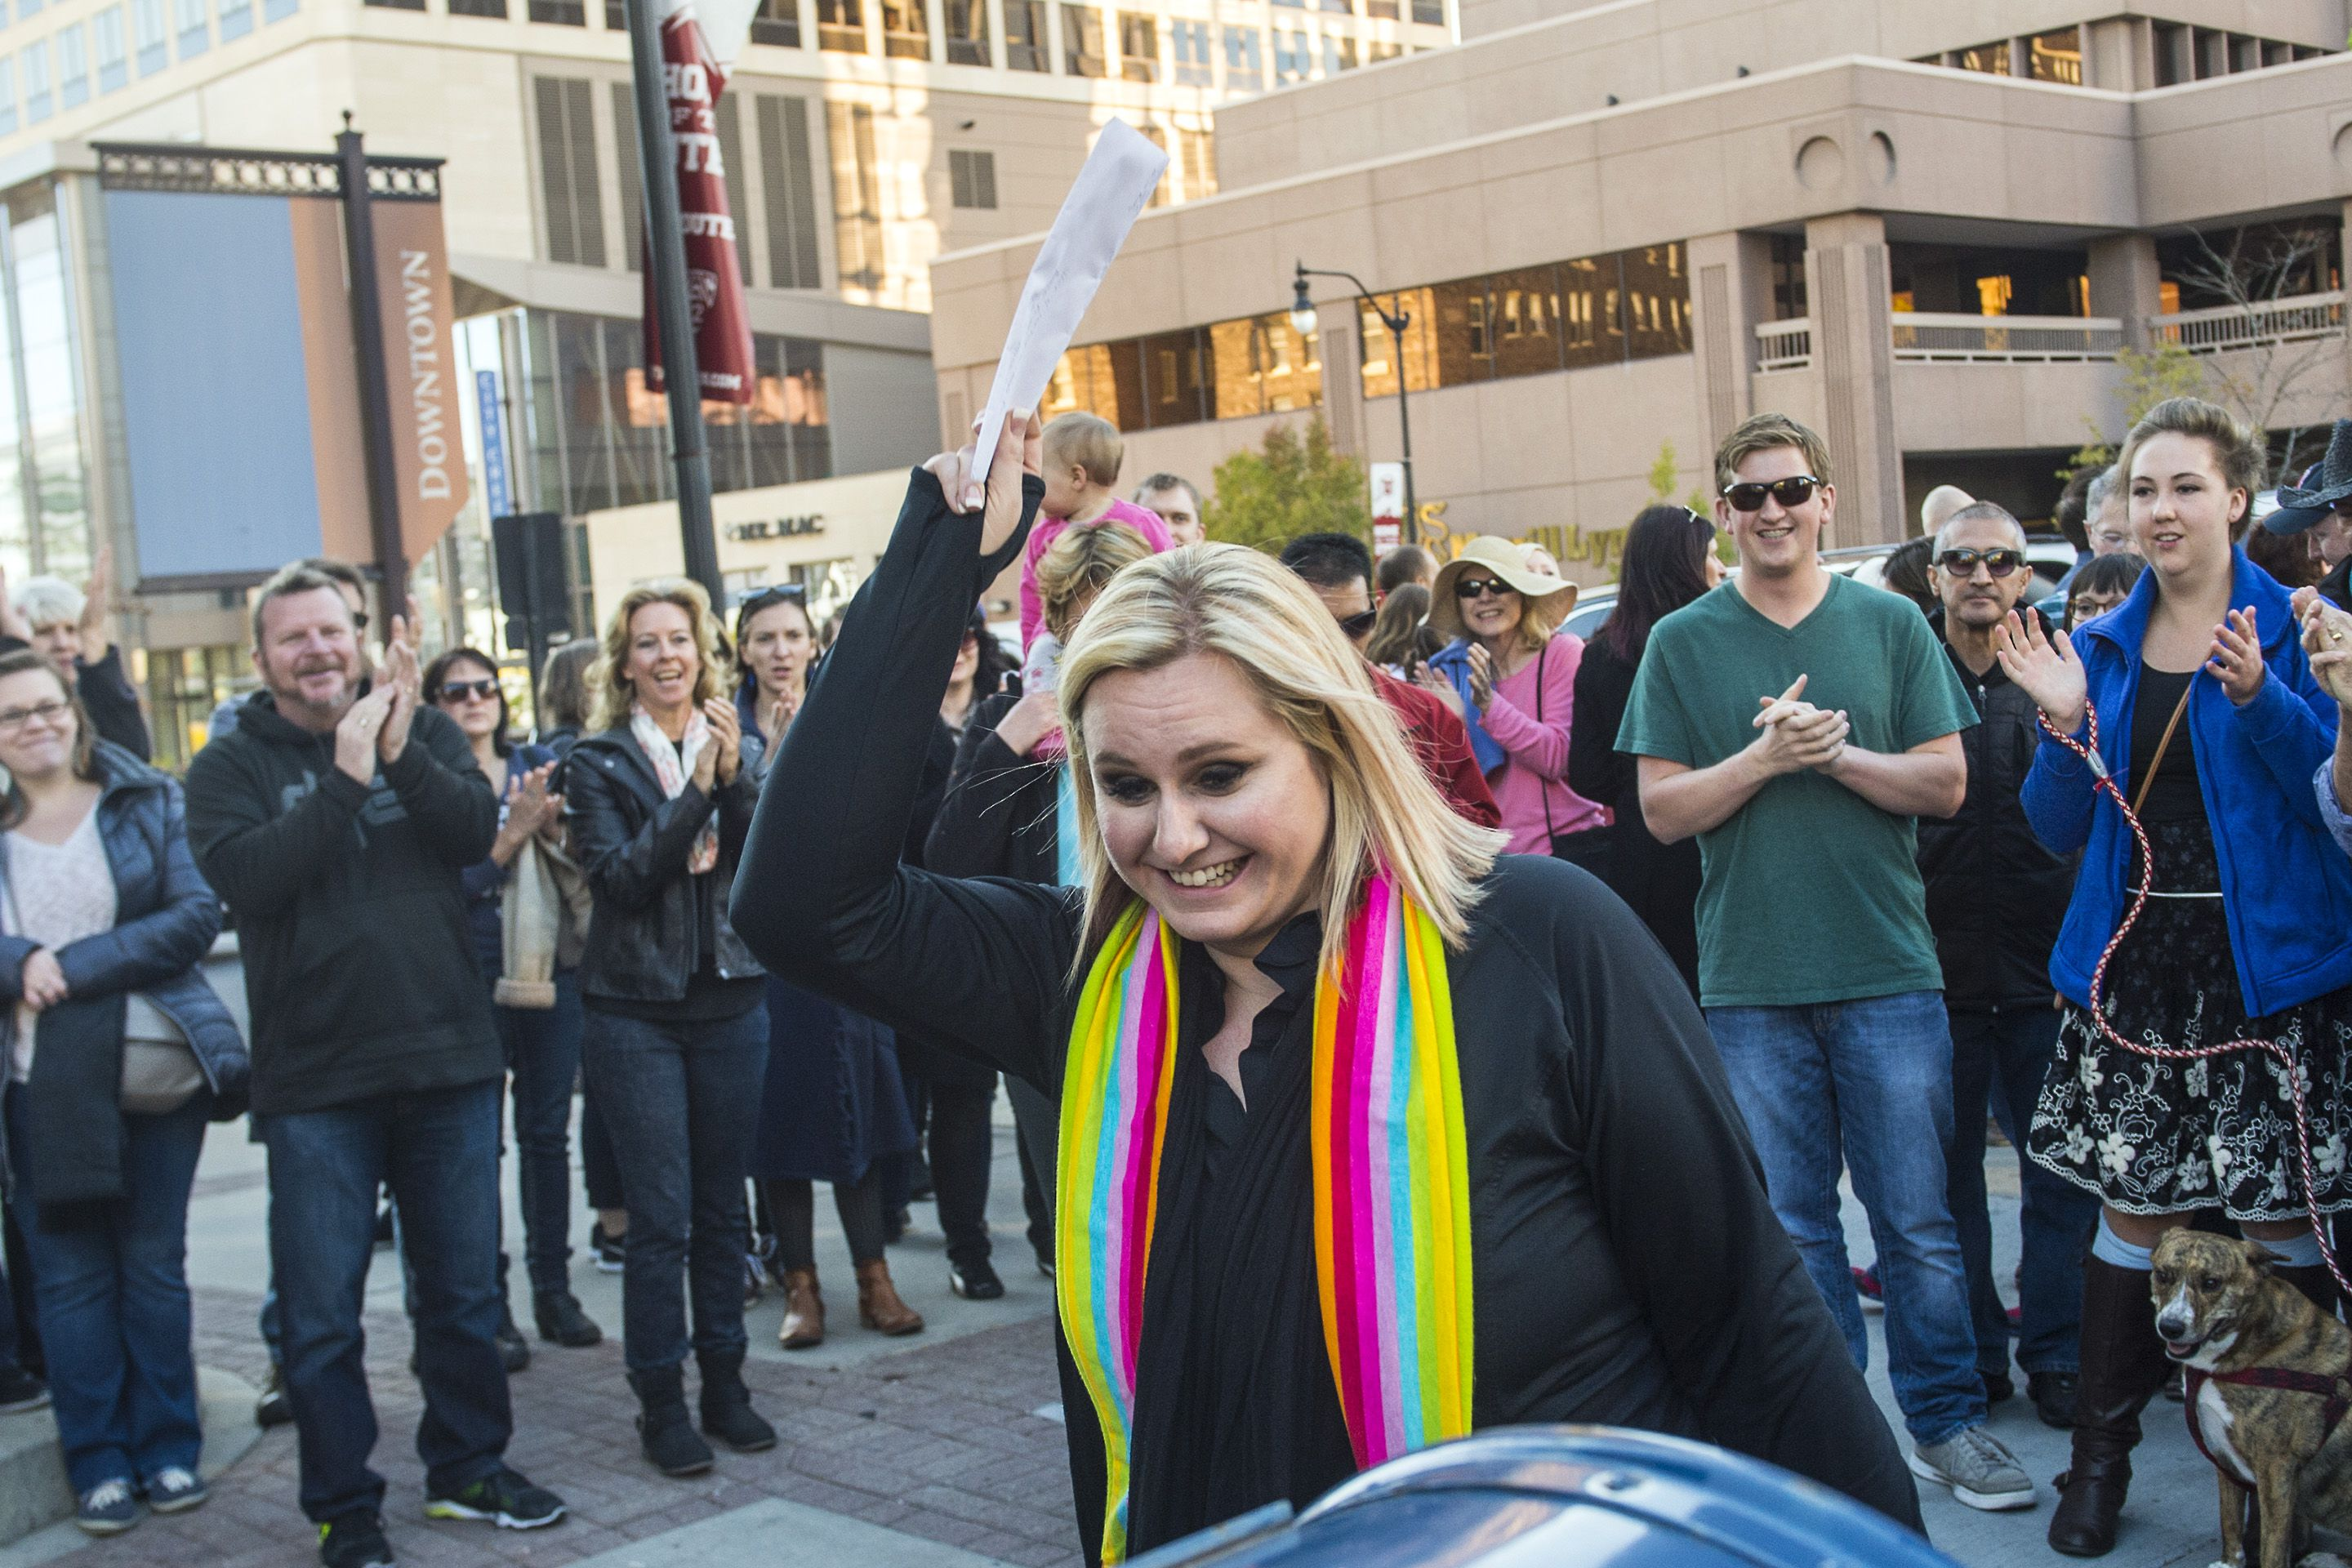 (Chris Detrick |  Tribune file photo) Sarah Epperson mails her letter of resignation from the Church of Jesus Christ of Latter-day Saints near Temple Square in Salt Lake City Saturday, Nov. 14, 2015.